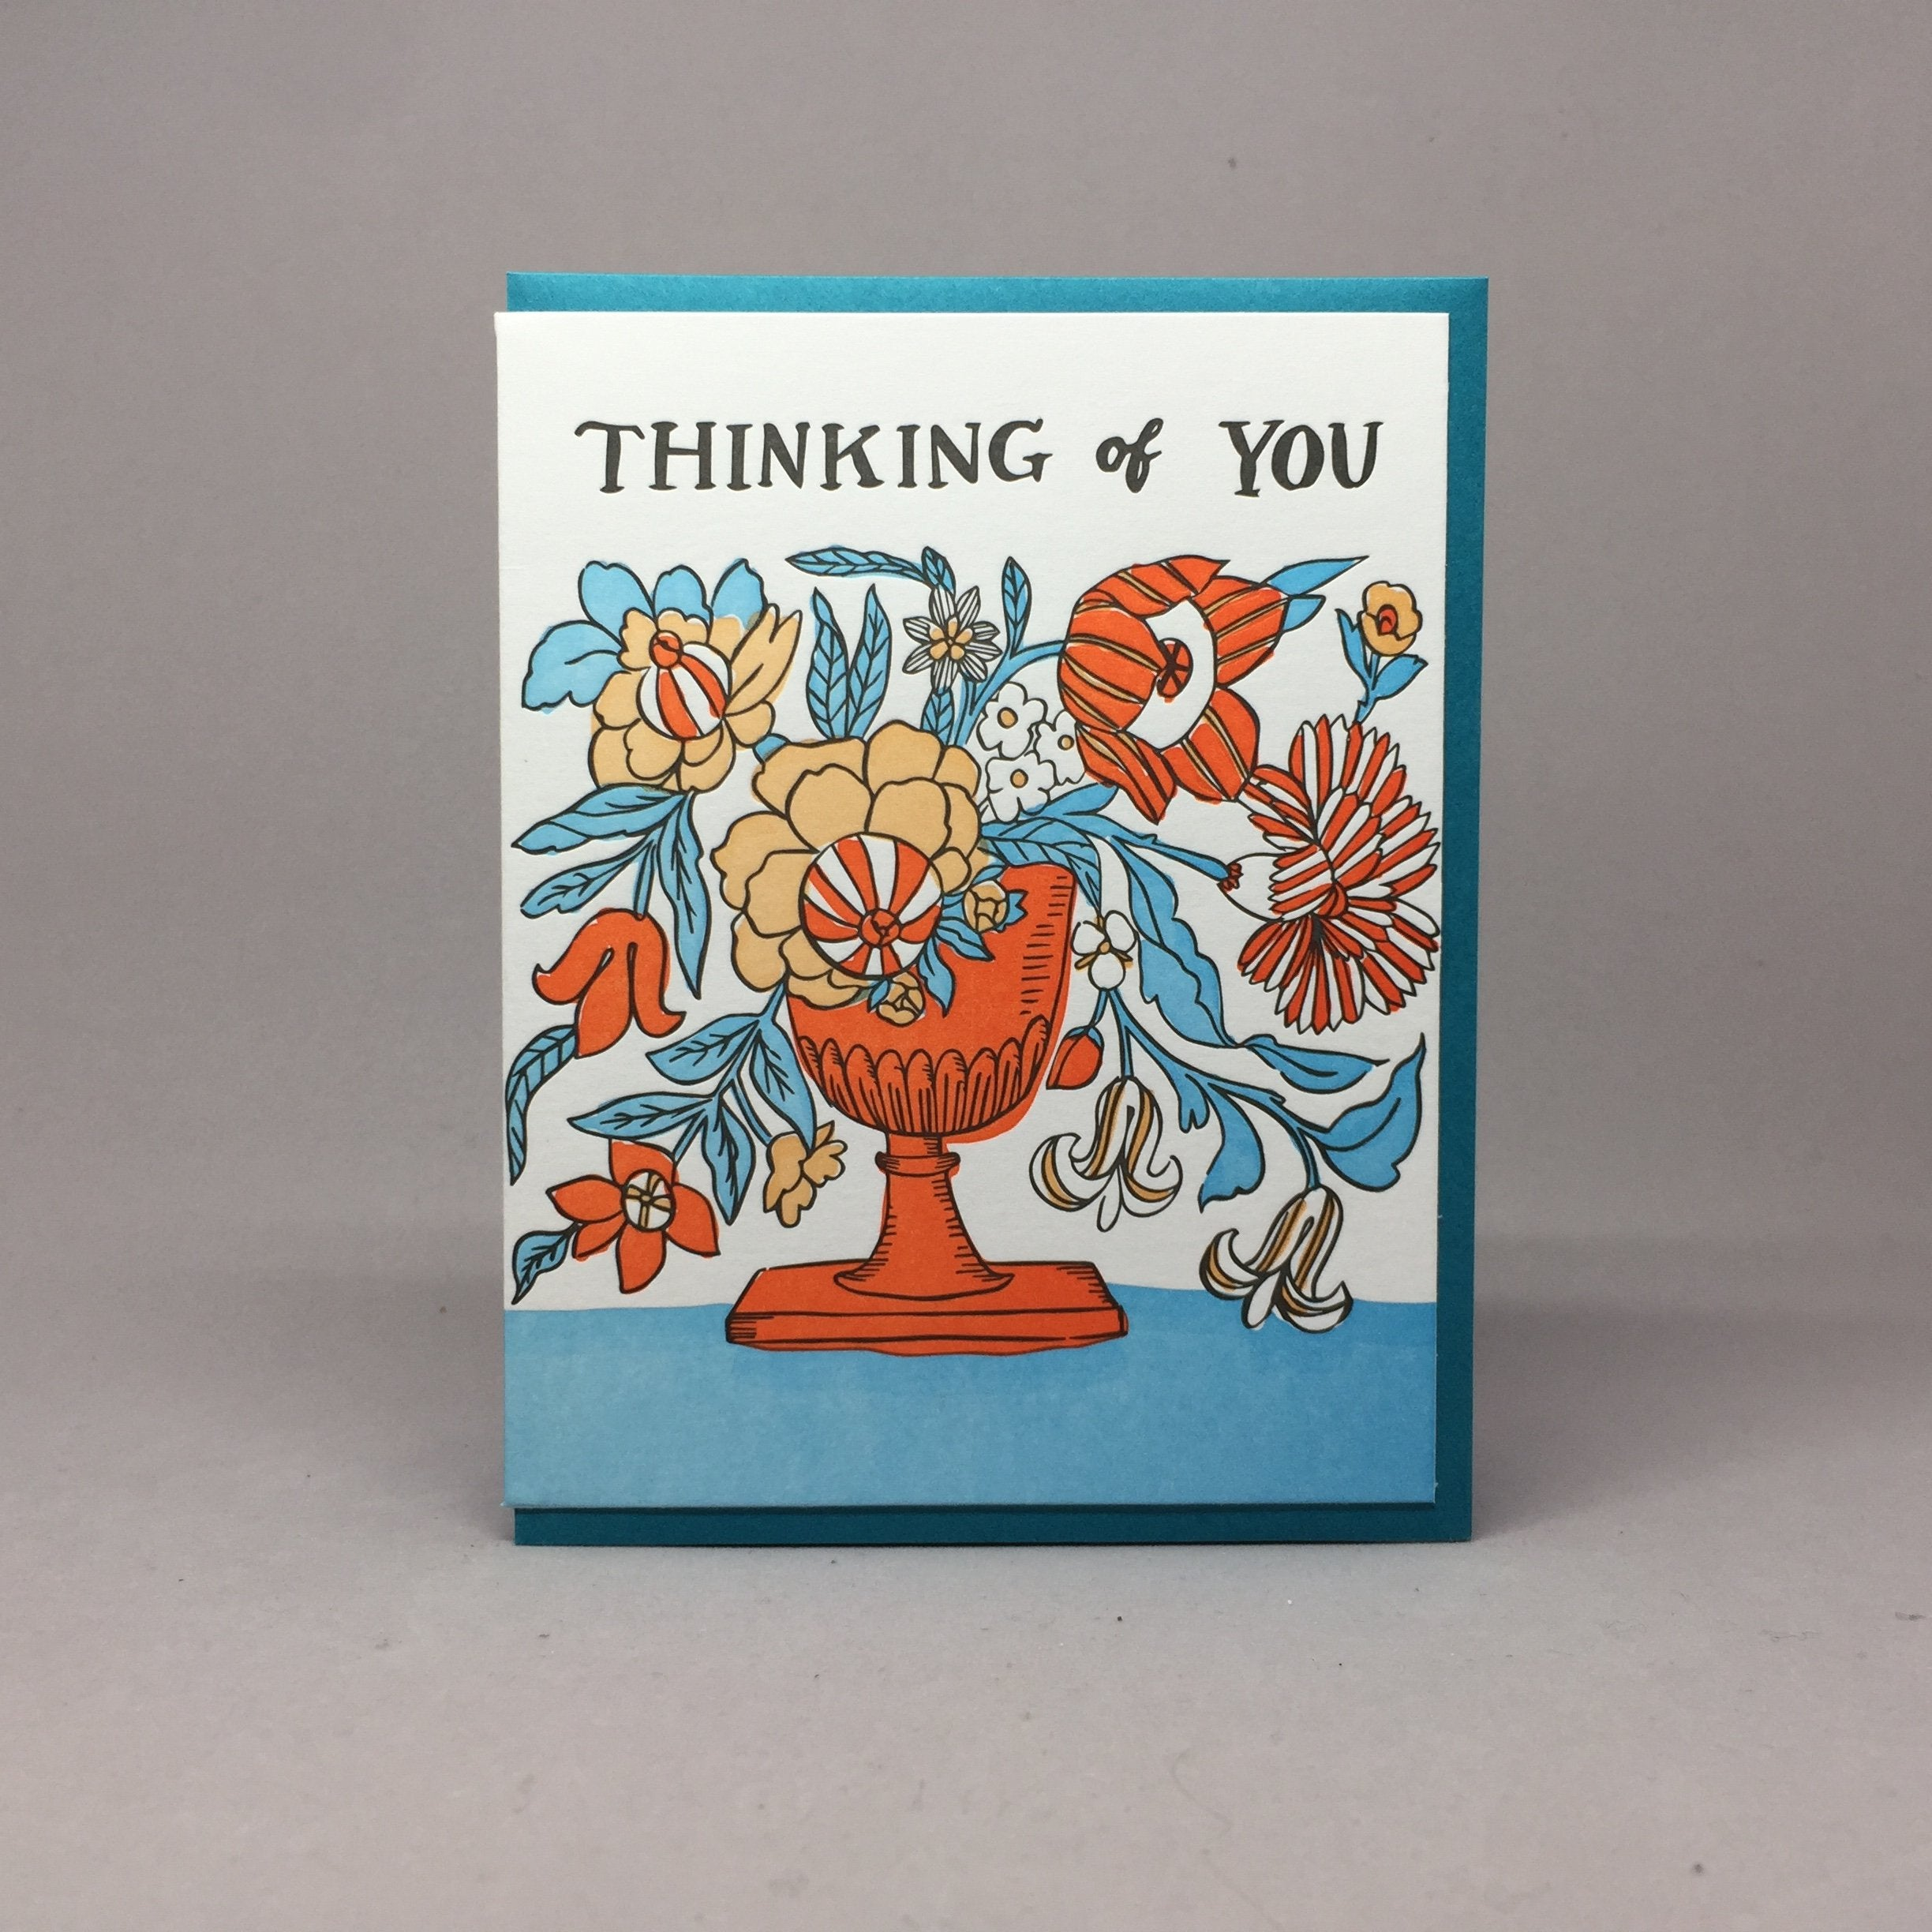 Thinking Of You Card, Big Wheel Press